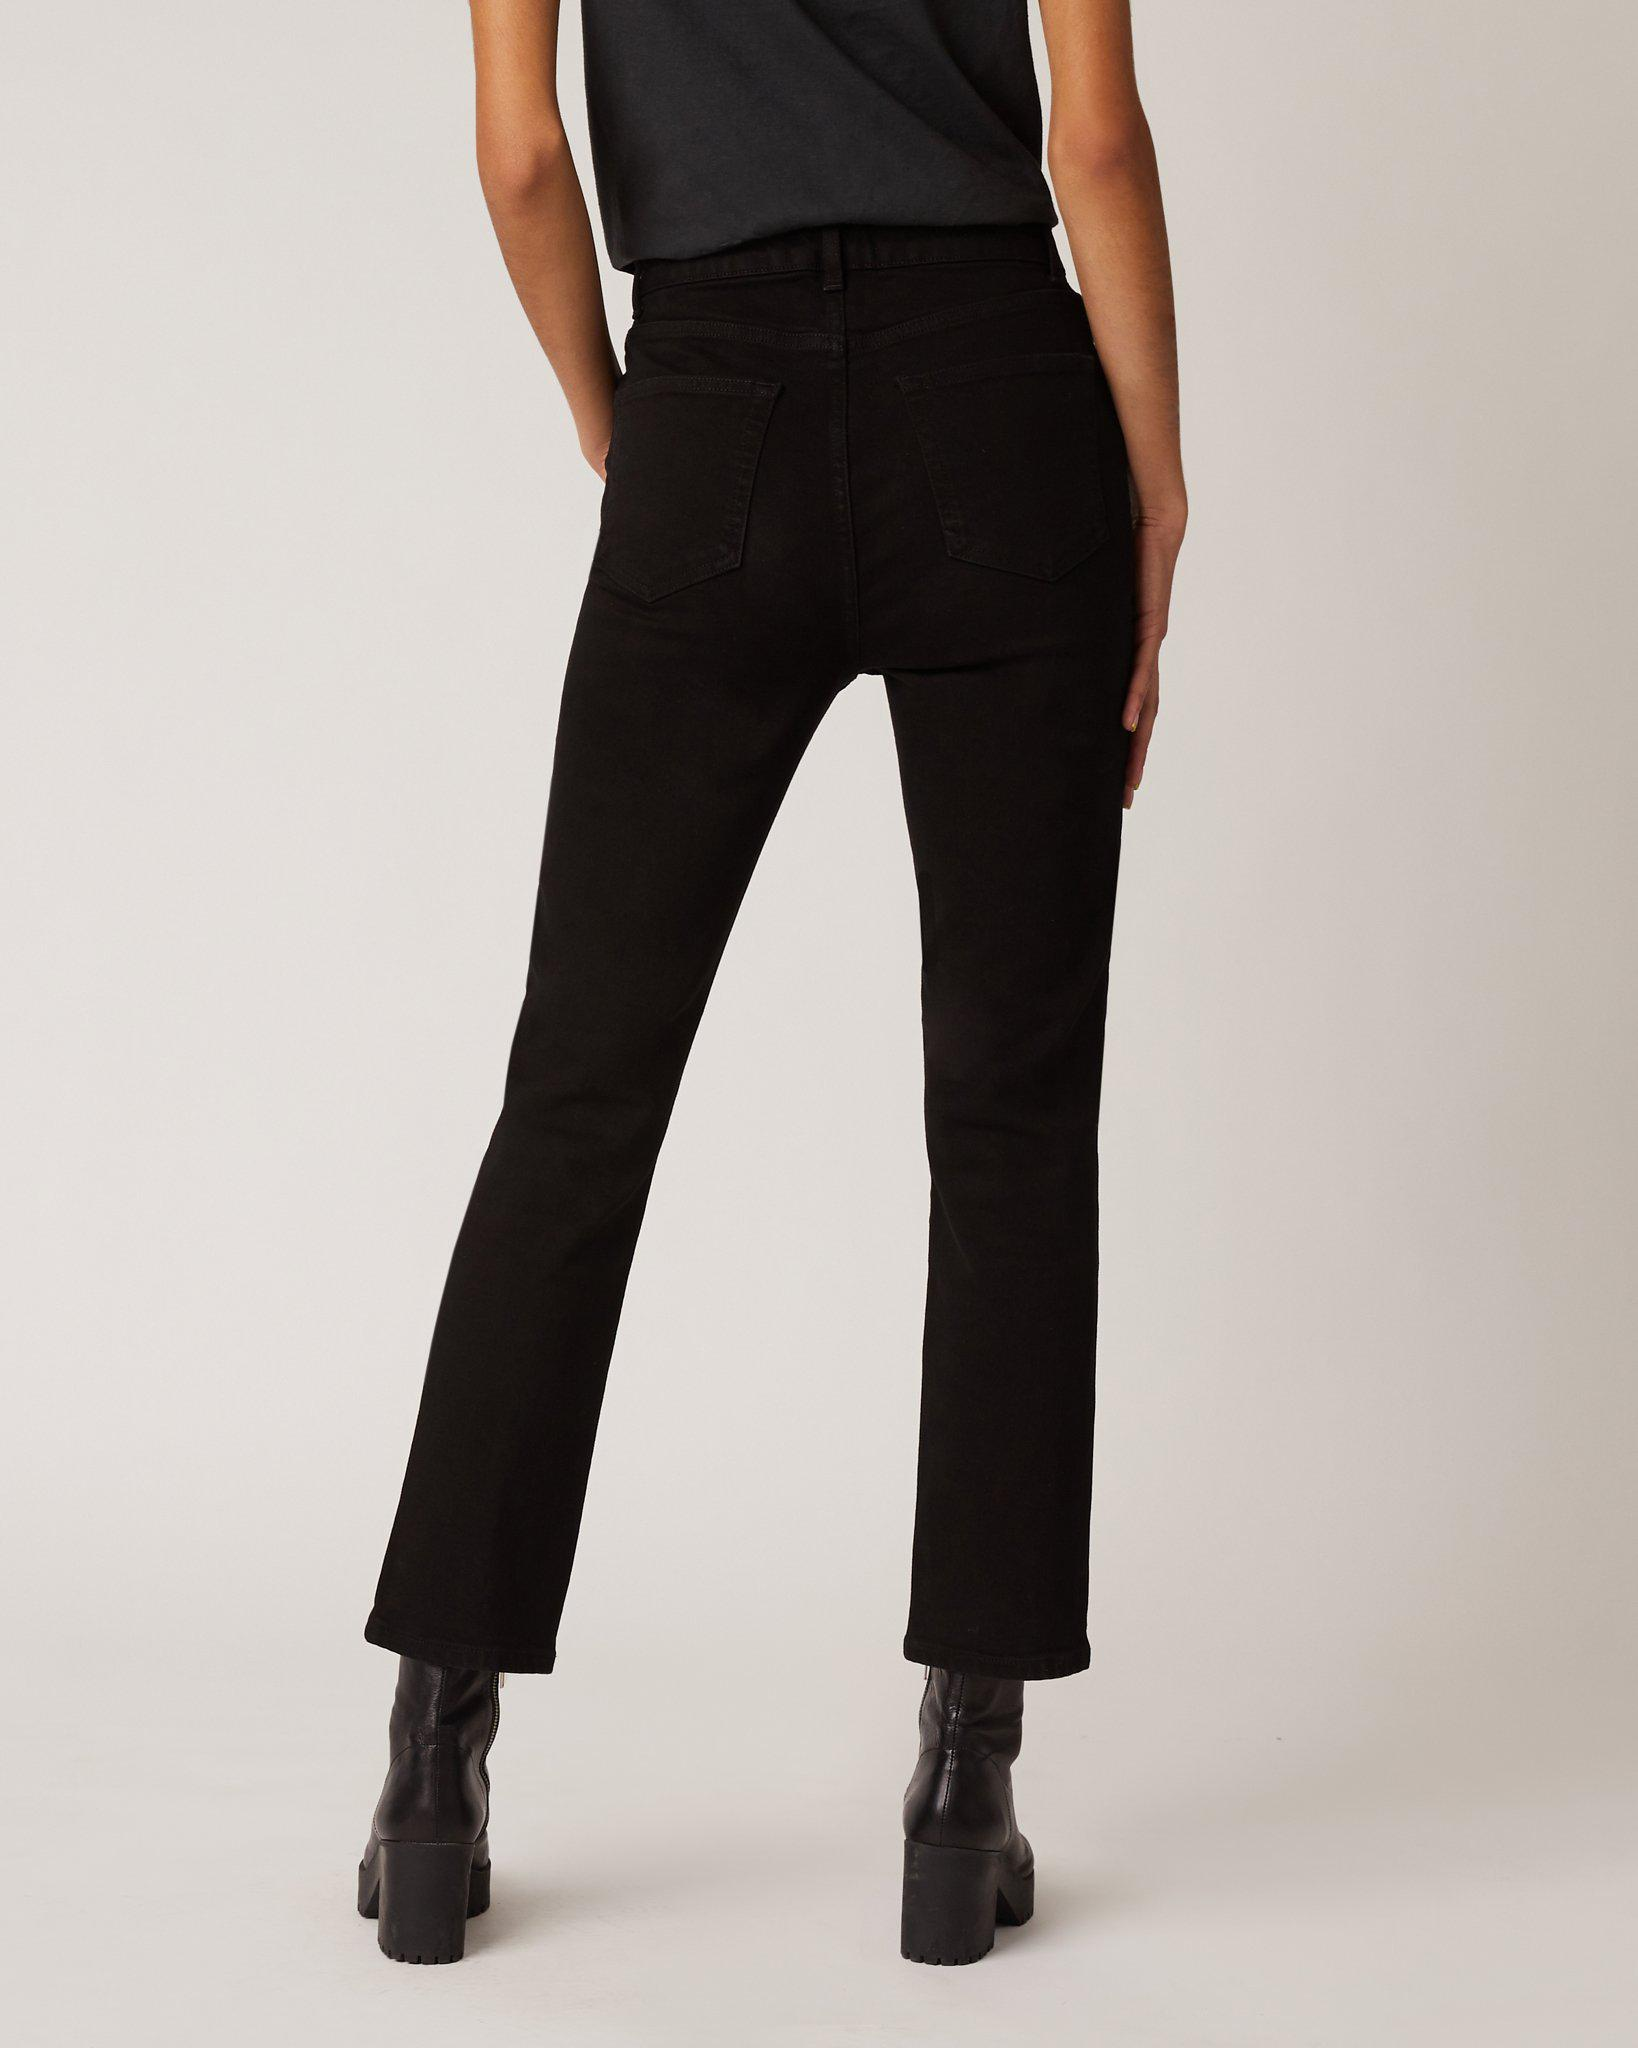 MGNTC Straight Jeans in Method 3